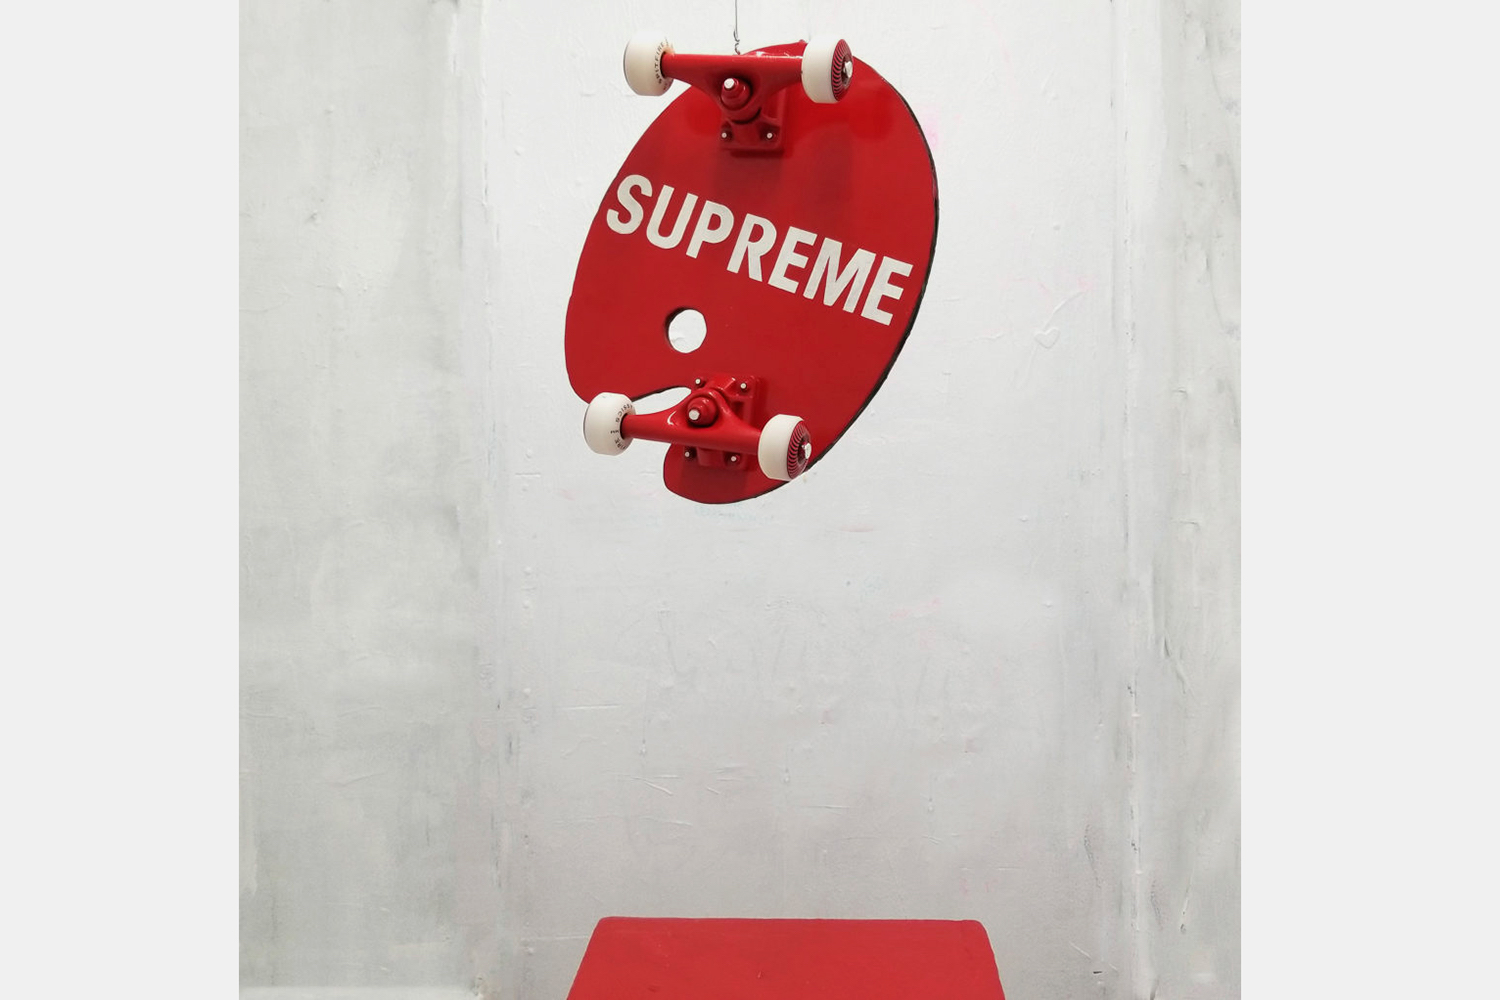 This Artist Sold His Knockoff Supreme Skateboard for $20,000